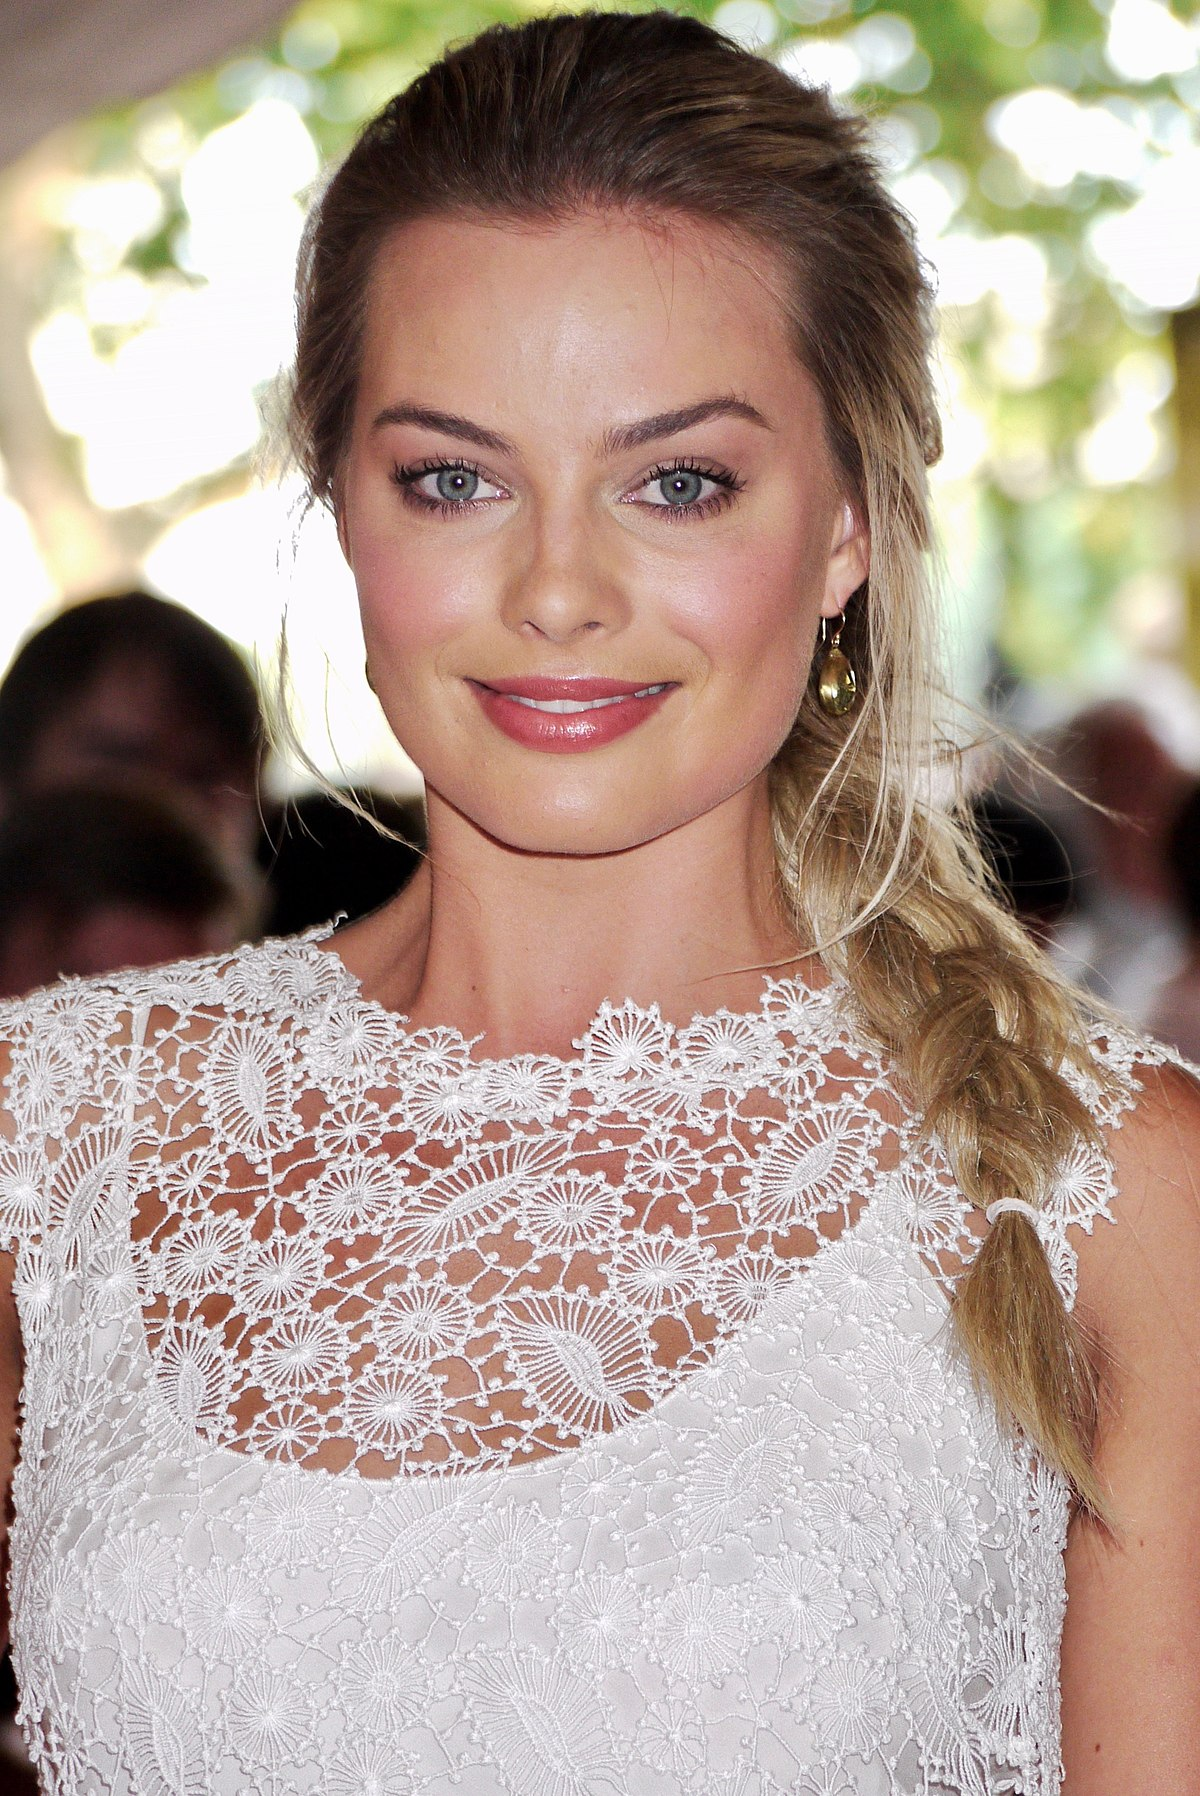 Margot Robbie Pretty Face Pics - Margot Robbie Pretty Face Pics